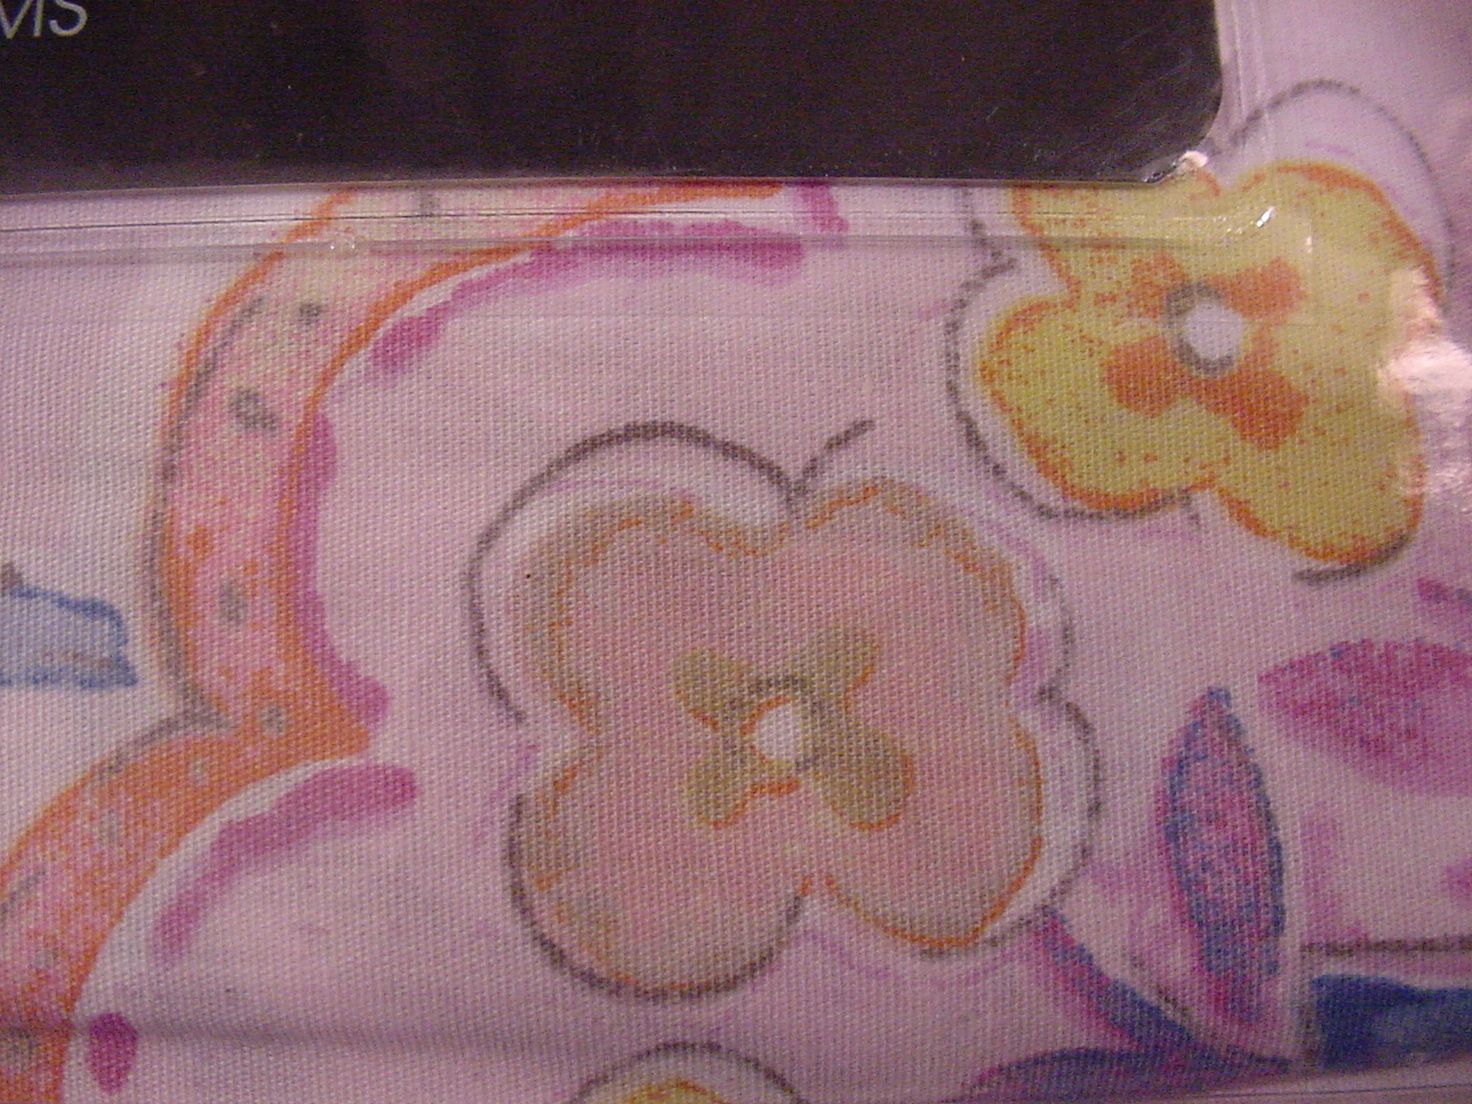 Cynthia Rowley Arilla Pink Blue Green Yellow Floral Duvet Cover Set Full/Queen